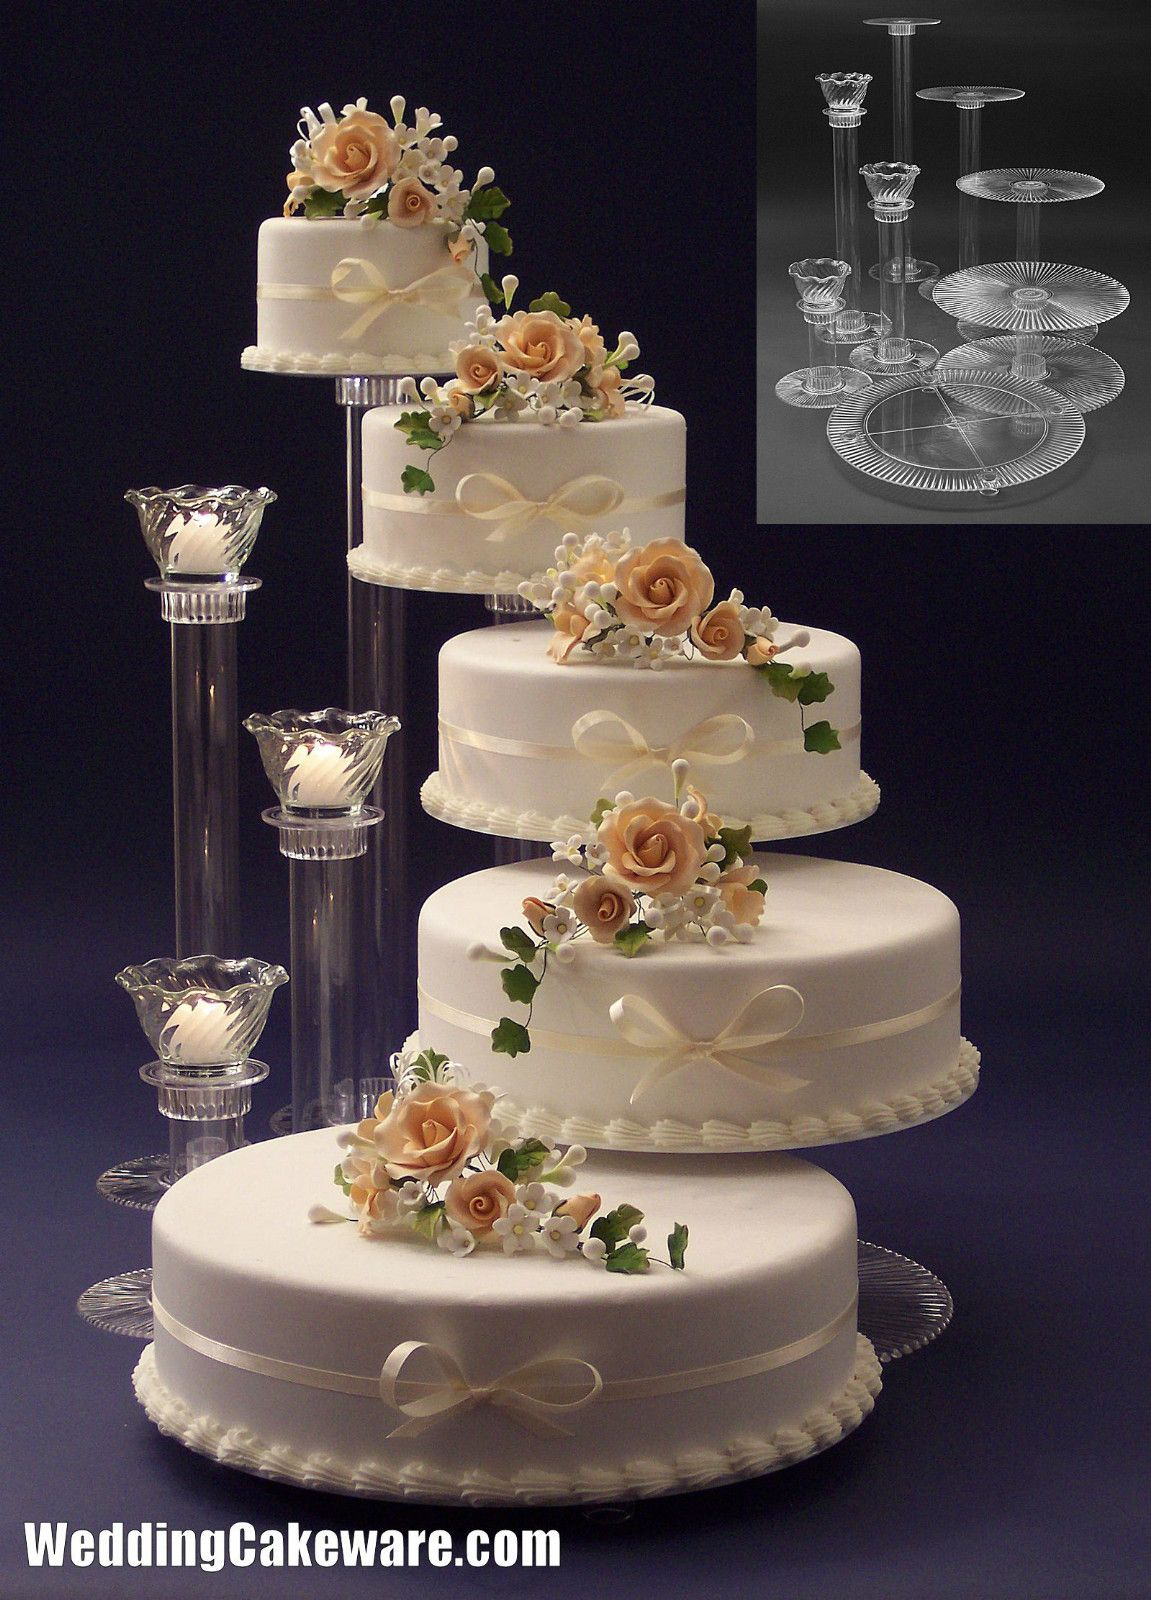 wedding cake platform 5 tier cascading wedding cake stand stands 3 tier candle 8718